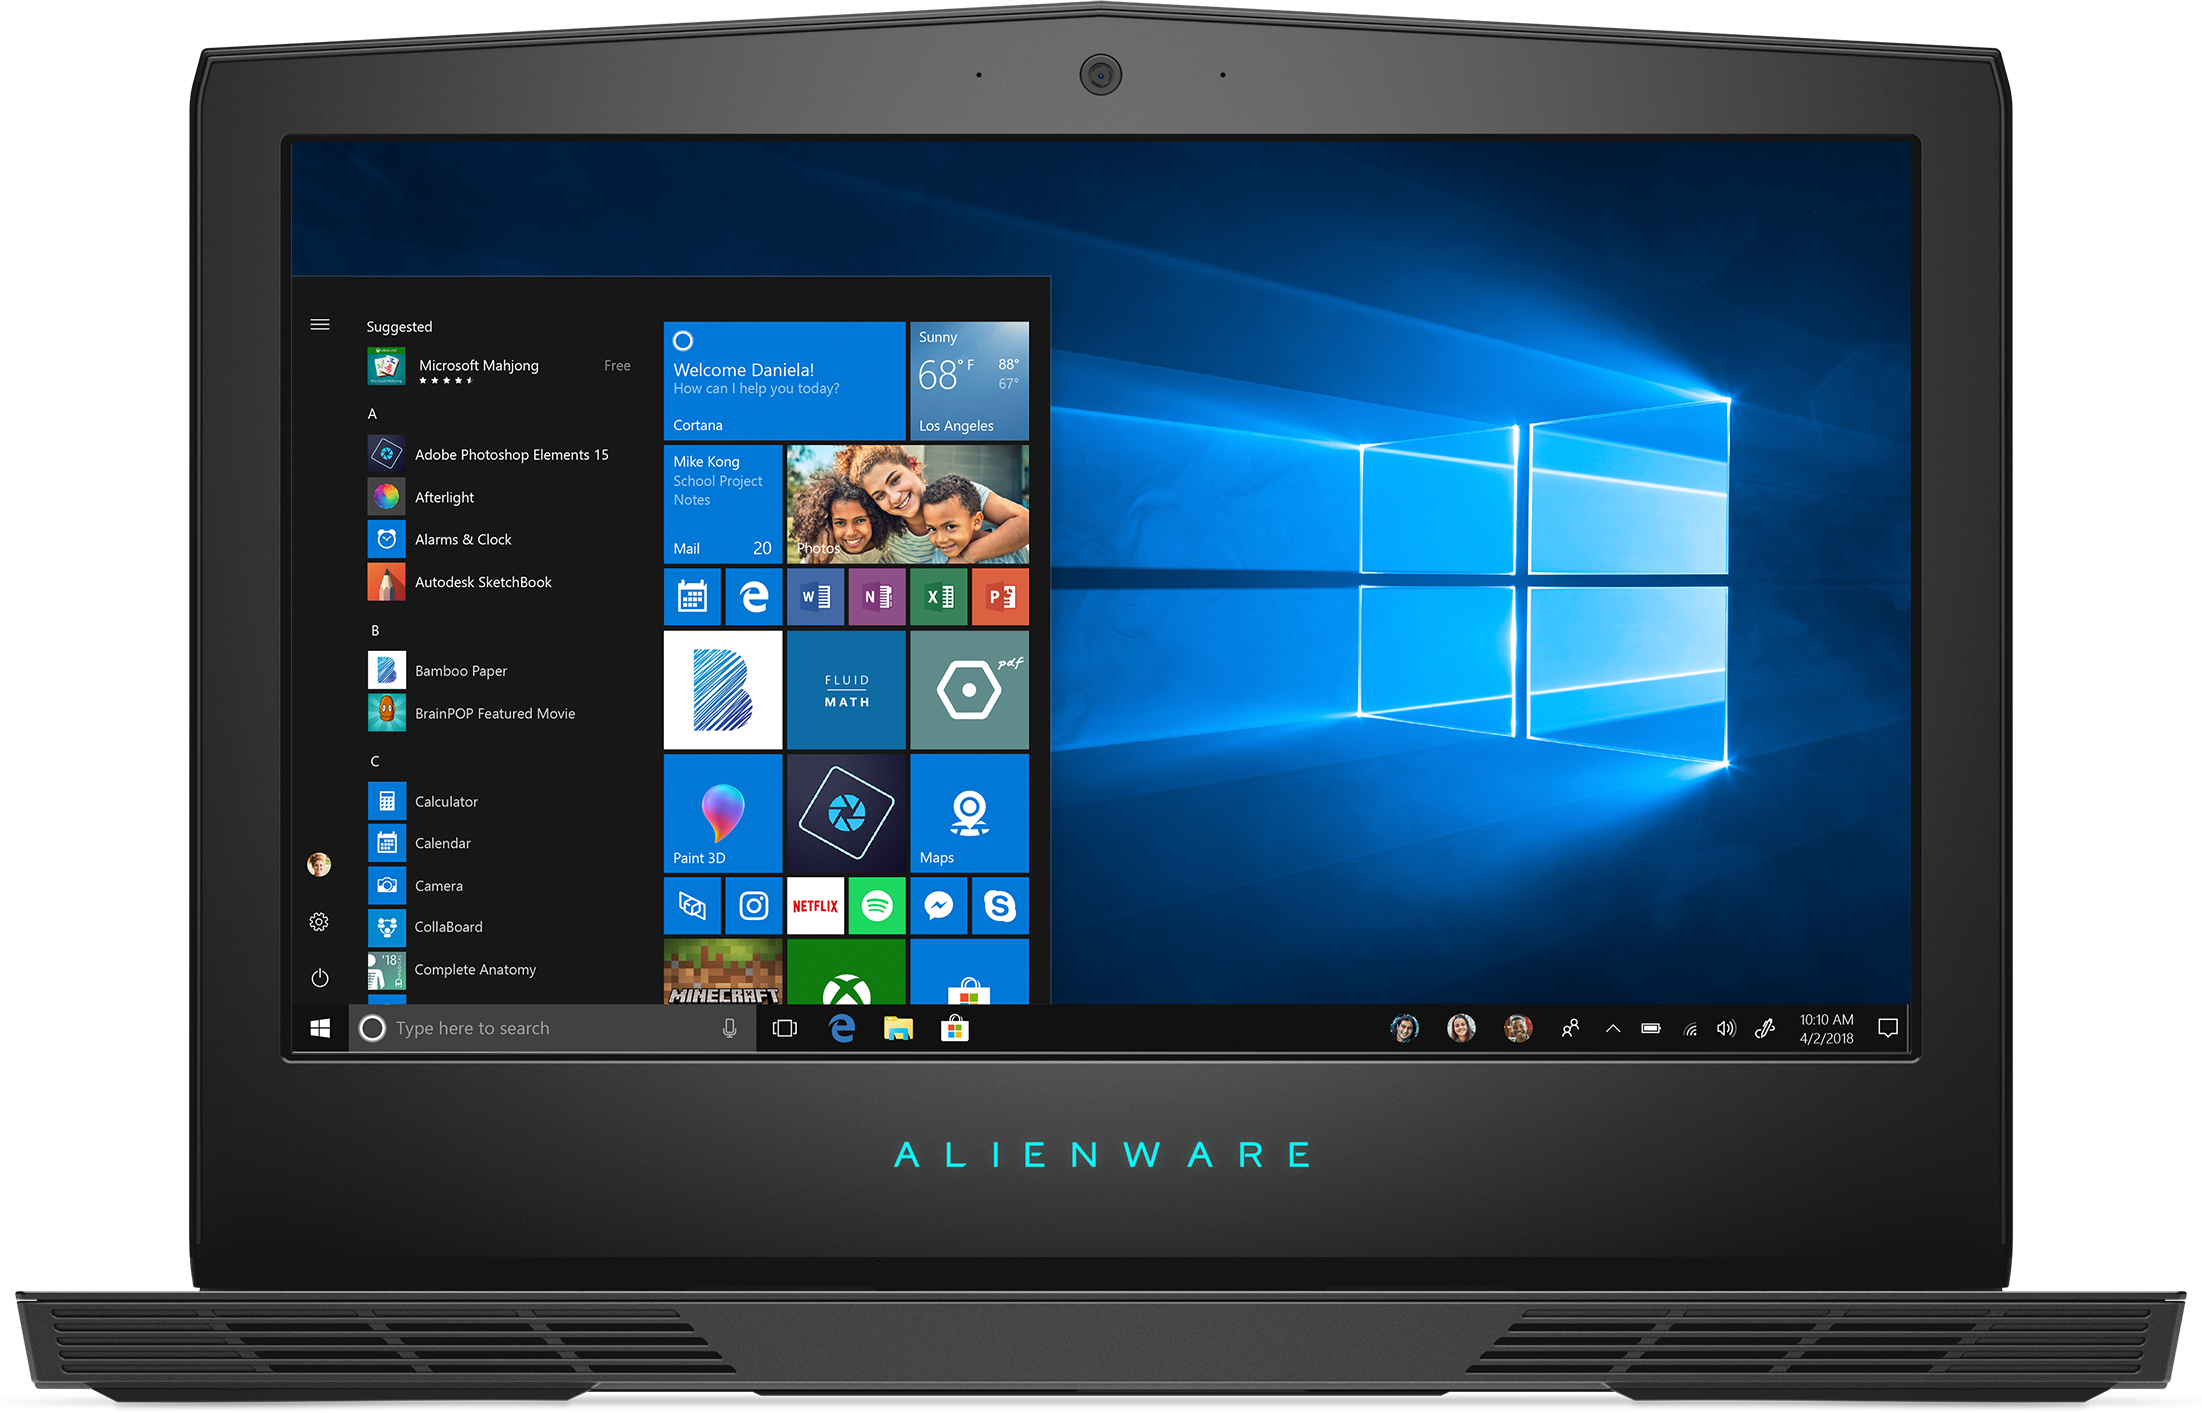 Front view of the Dell Alienware 15